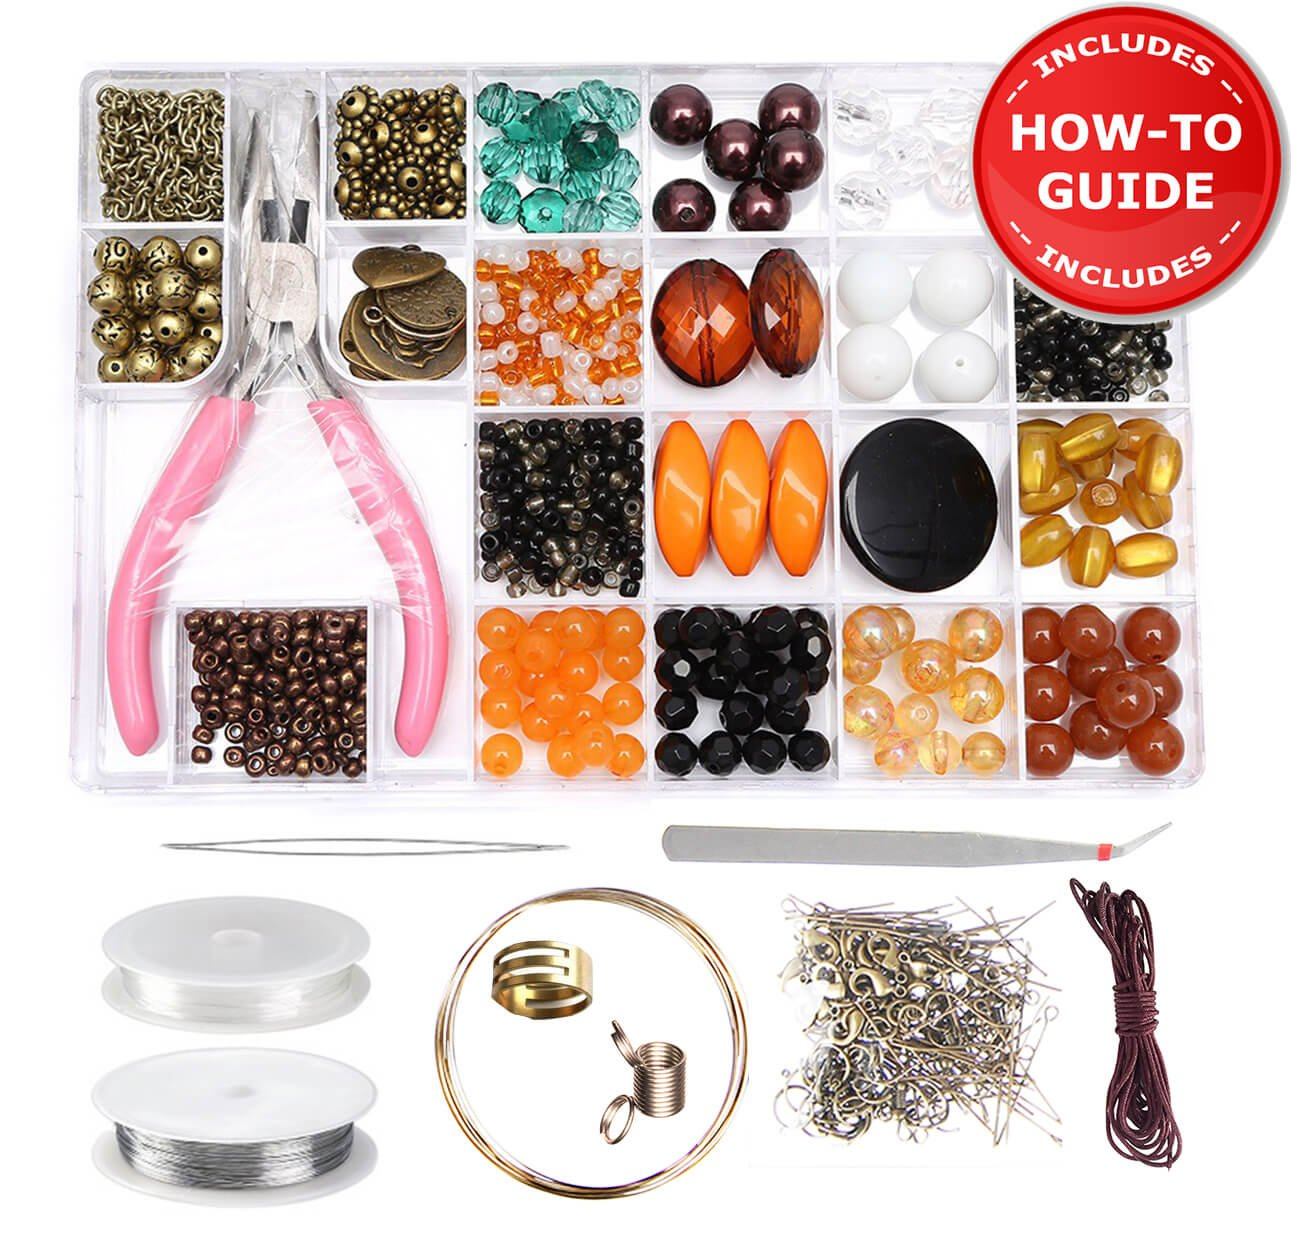 Jewelry Making Kit - Beading Starter Kits for Adults, Teens, Girls. Includes All Needed Jewellery Making Supplies, Beads and Instructions for Beginners | Turquoise Modda 4336834992